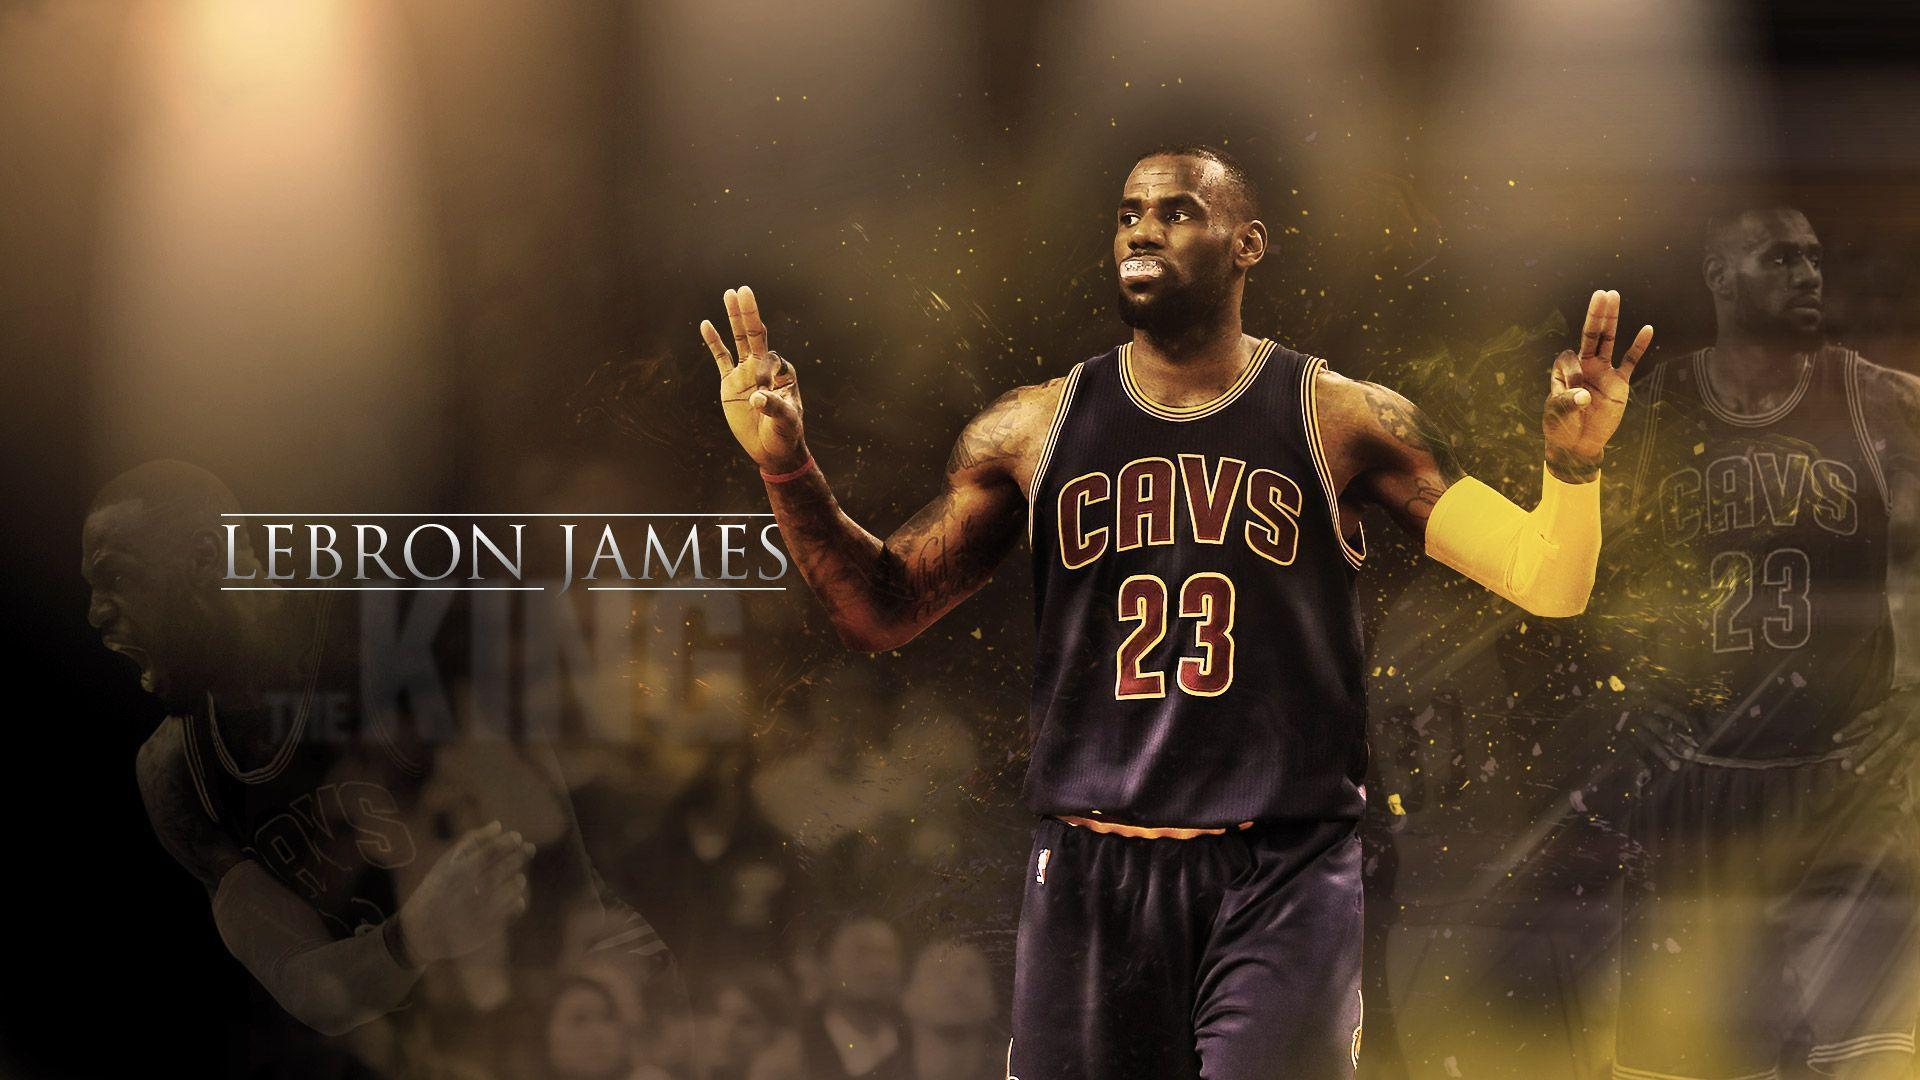 LeBron James Wallpapers | Basketball Wallpapers at ...